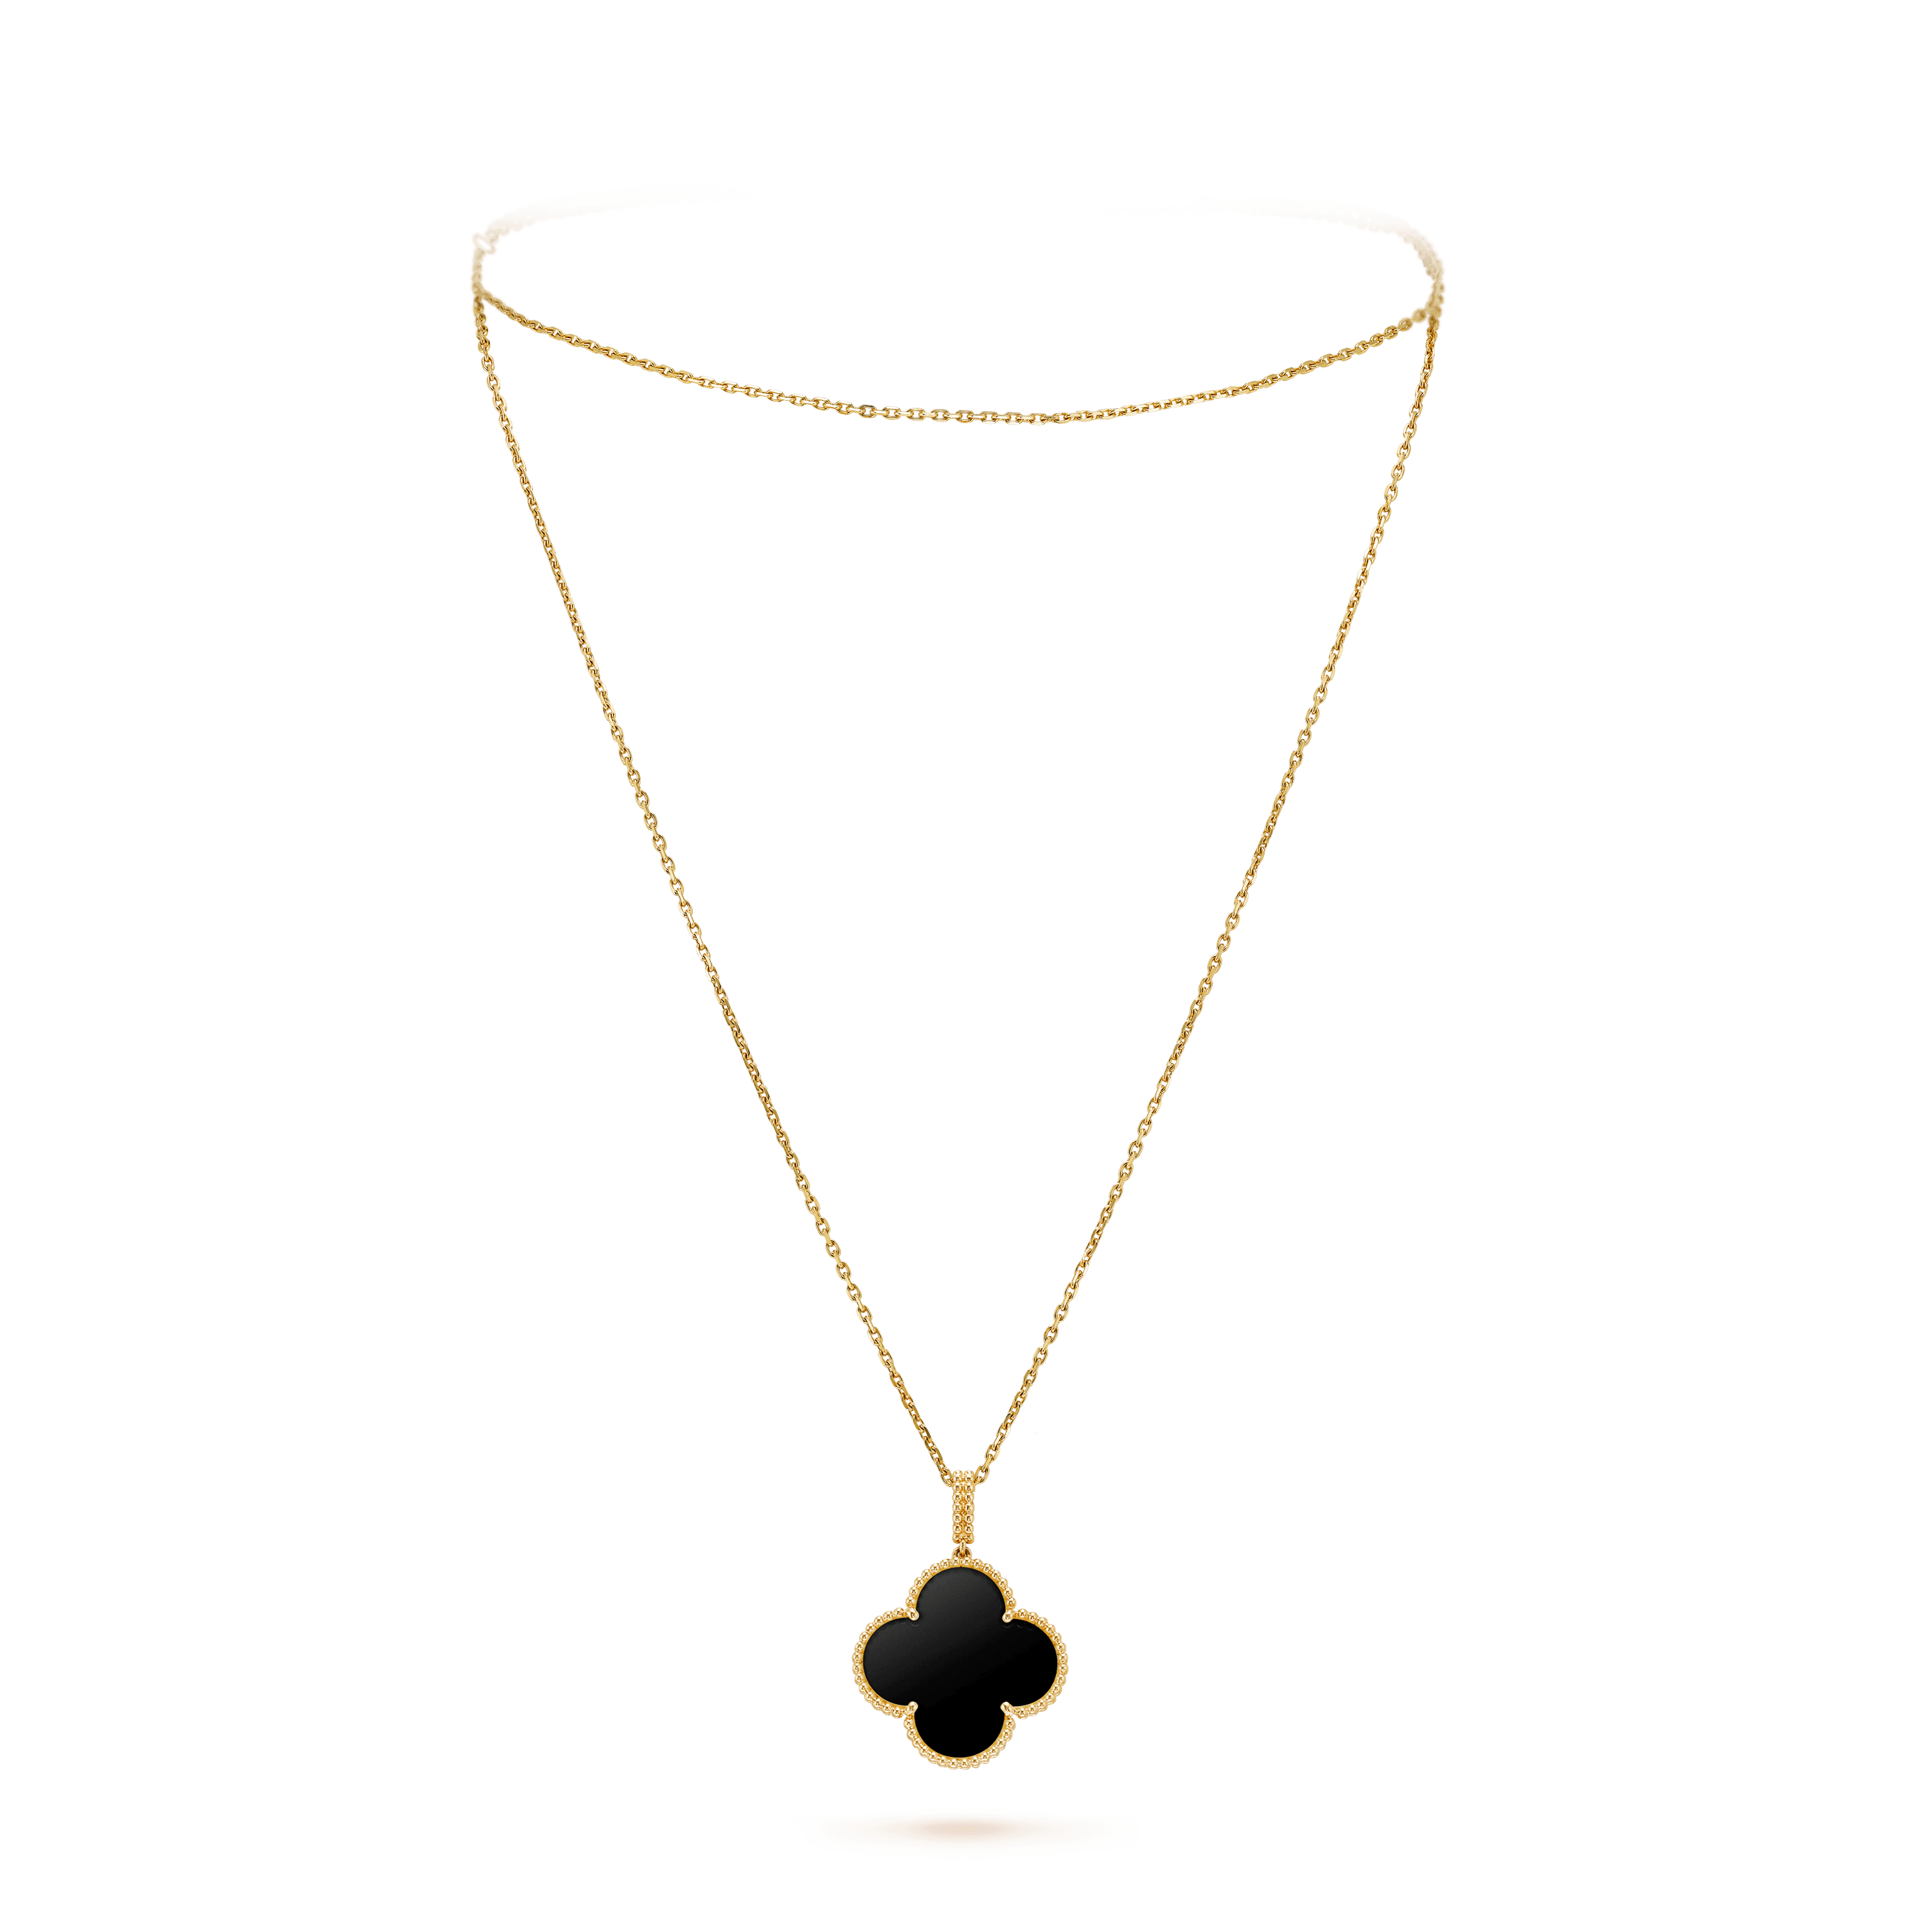 Magic Alhambra long necklace, 1 motif, - On Stand View - VCARO49M00 - Van Cleef & Arpels